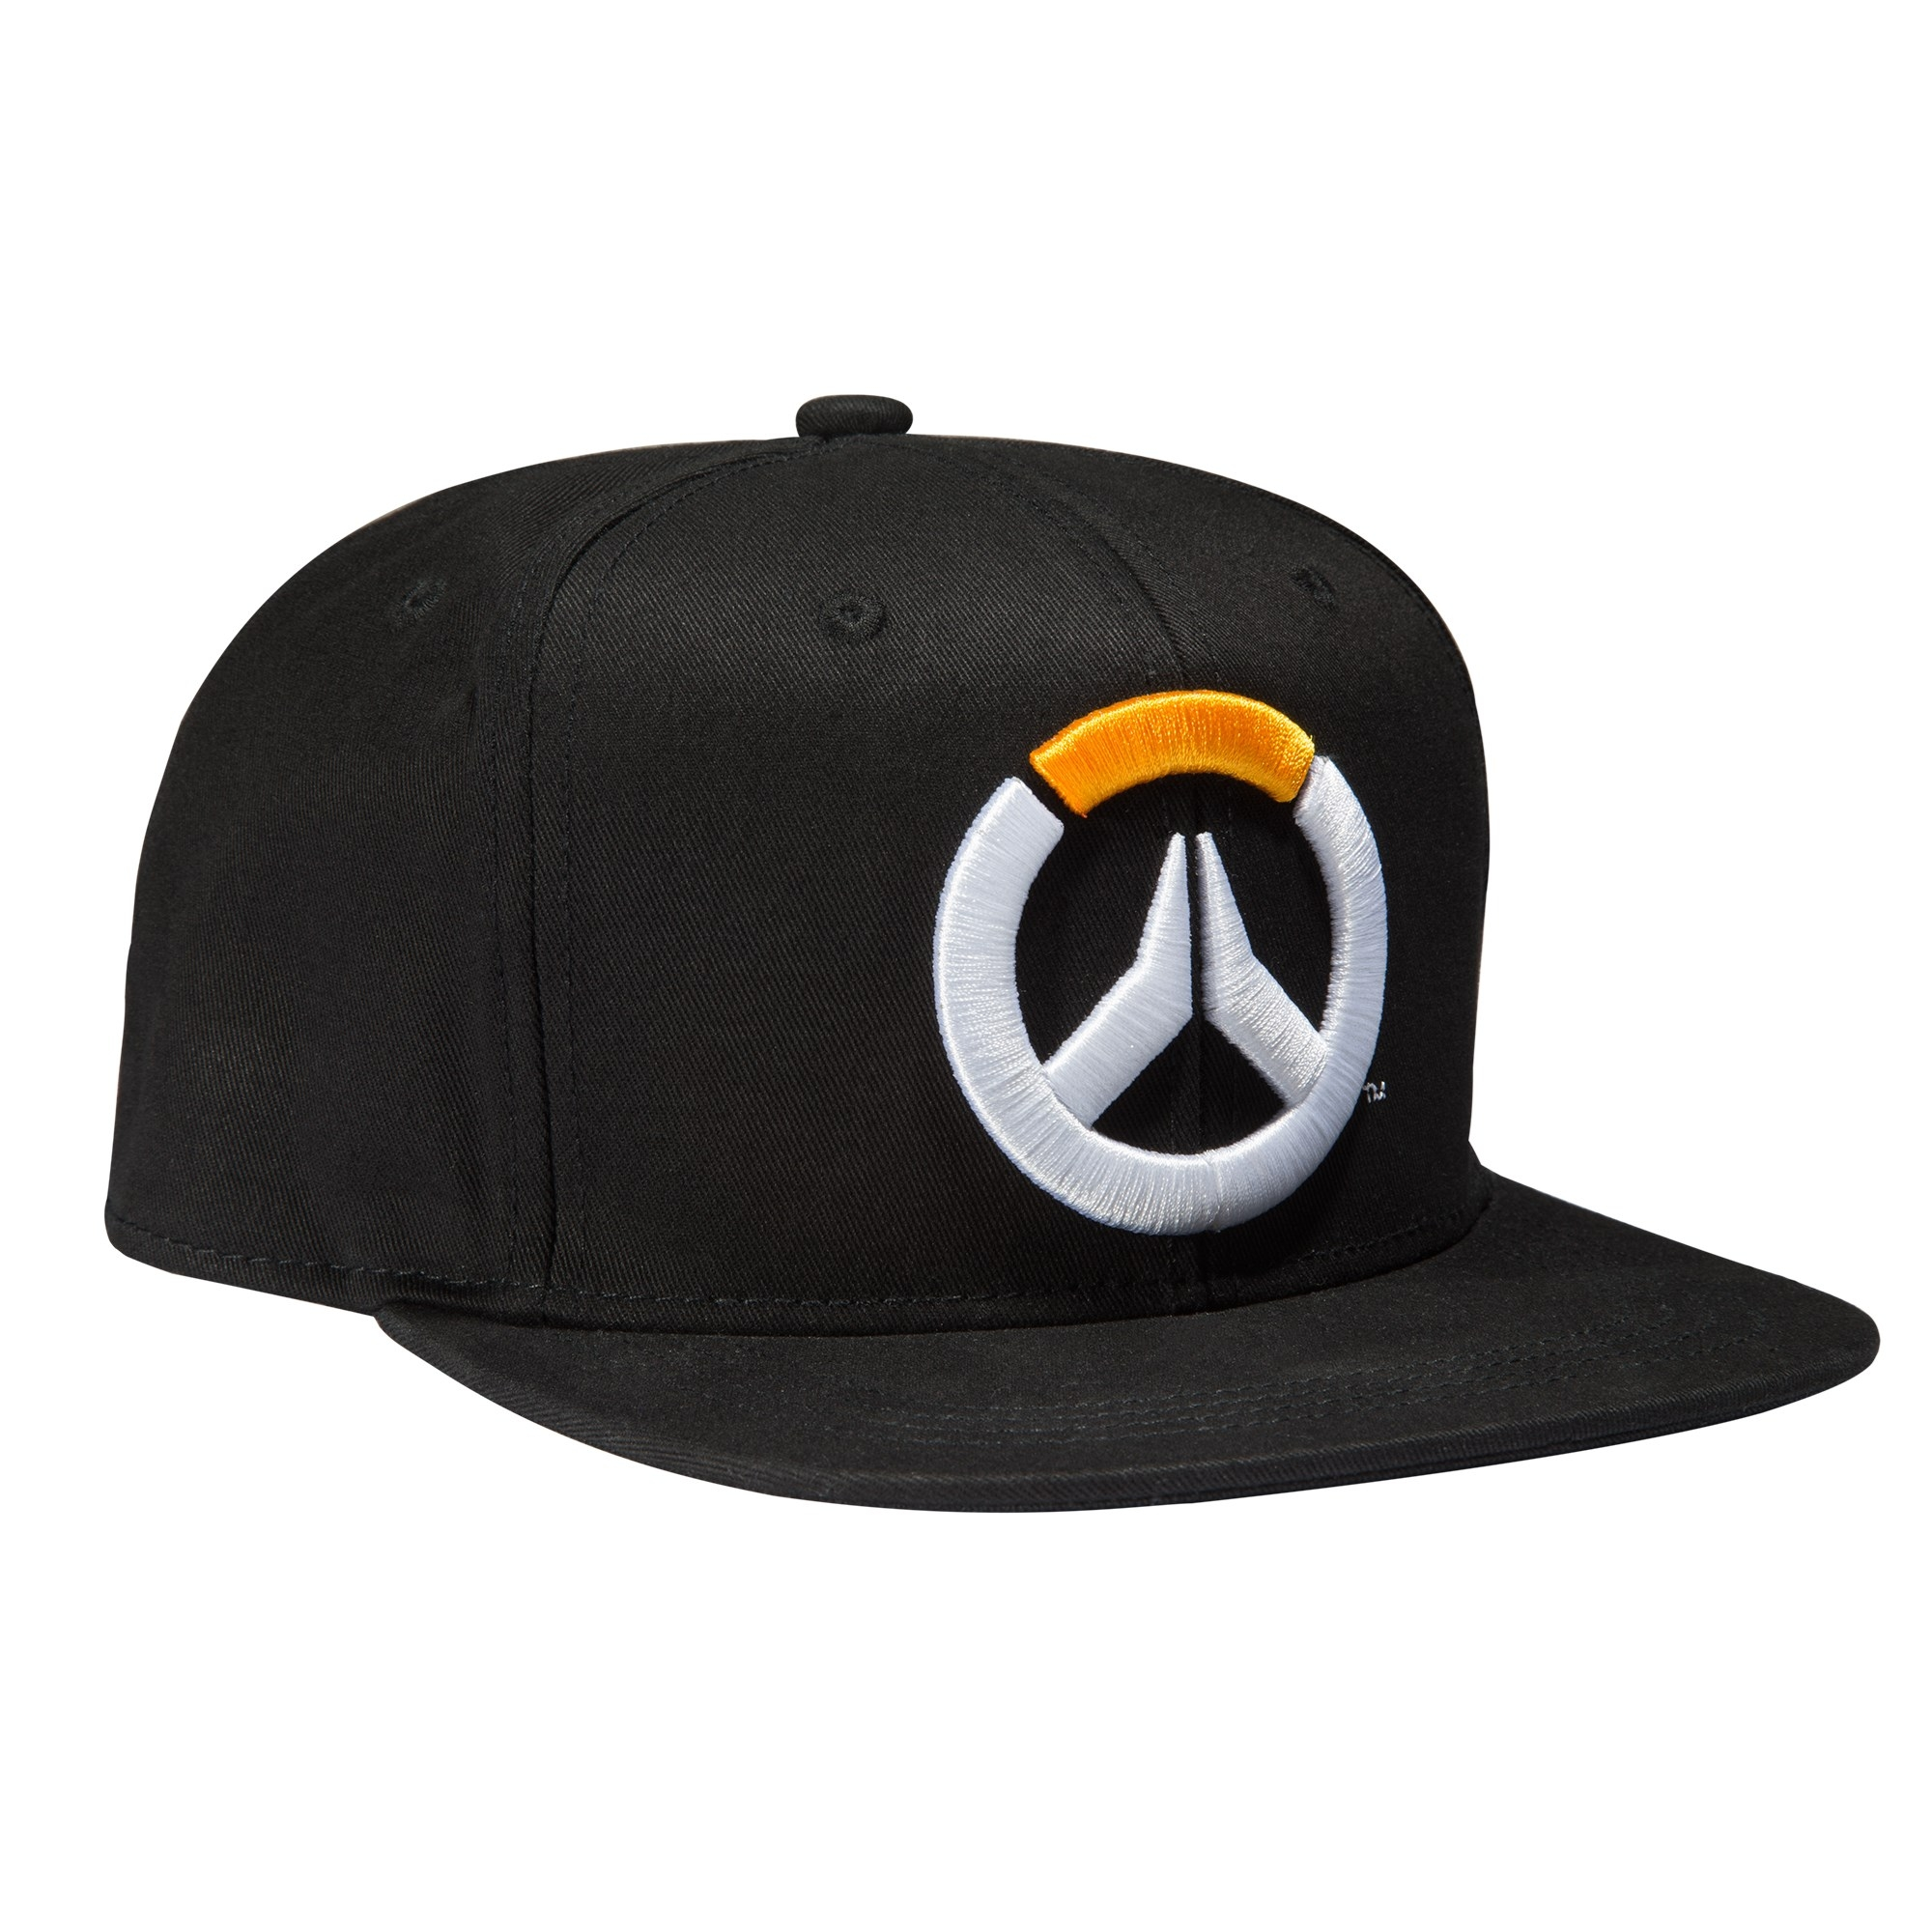 Alternative photo: Overwatch Frenetic Snapback Cap